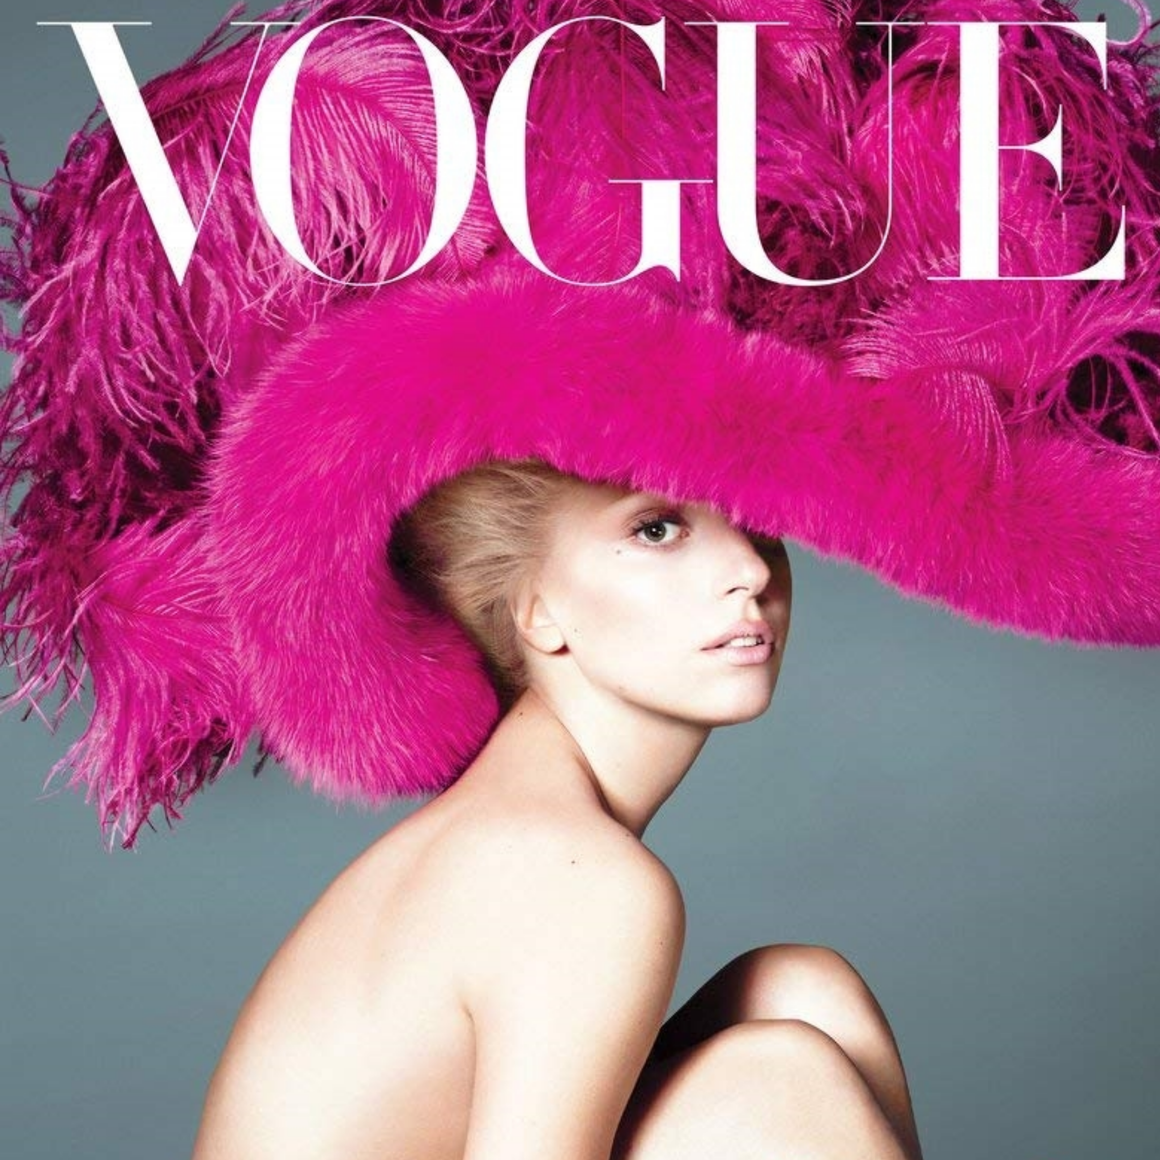 VOGUE X MUSIC  / FOREWORD BY JONATHAN VAN METER